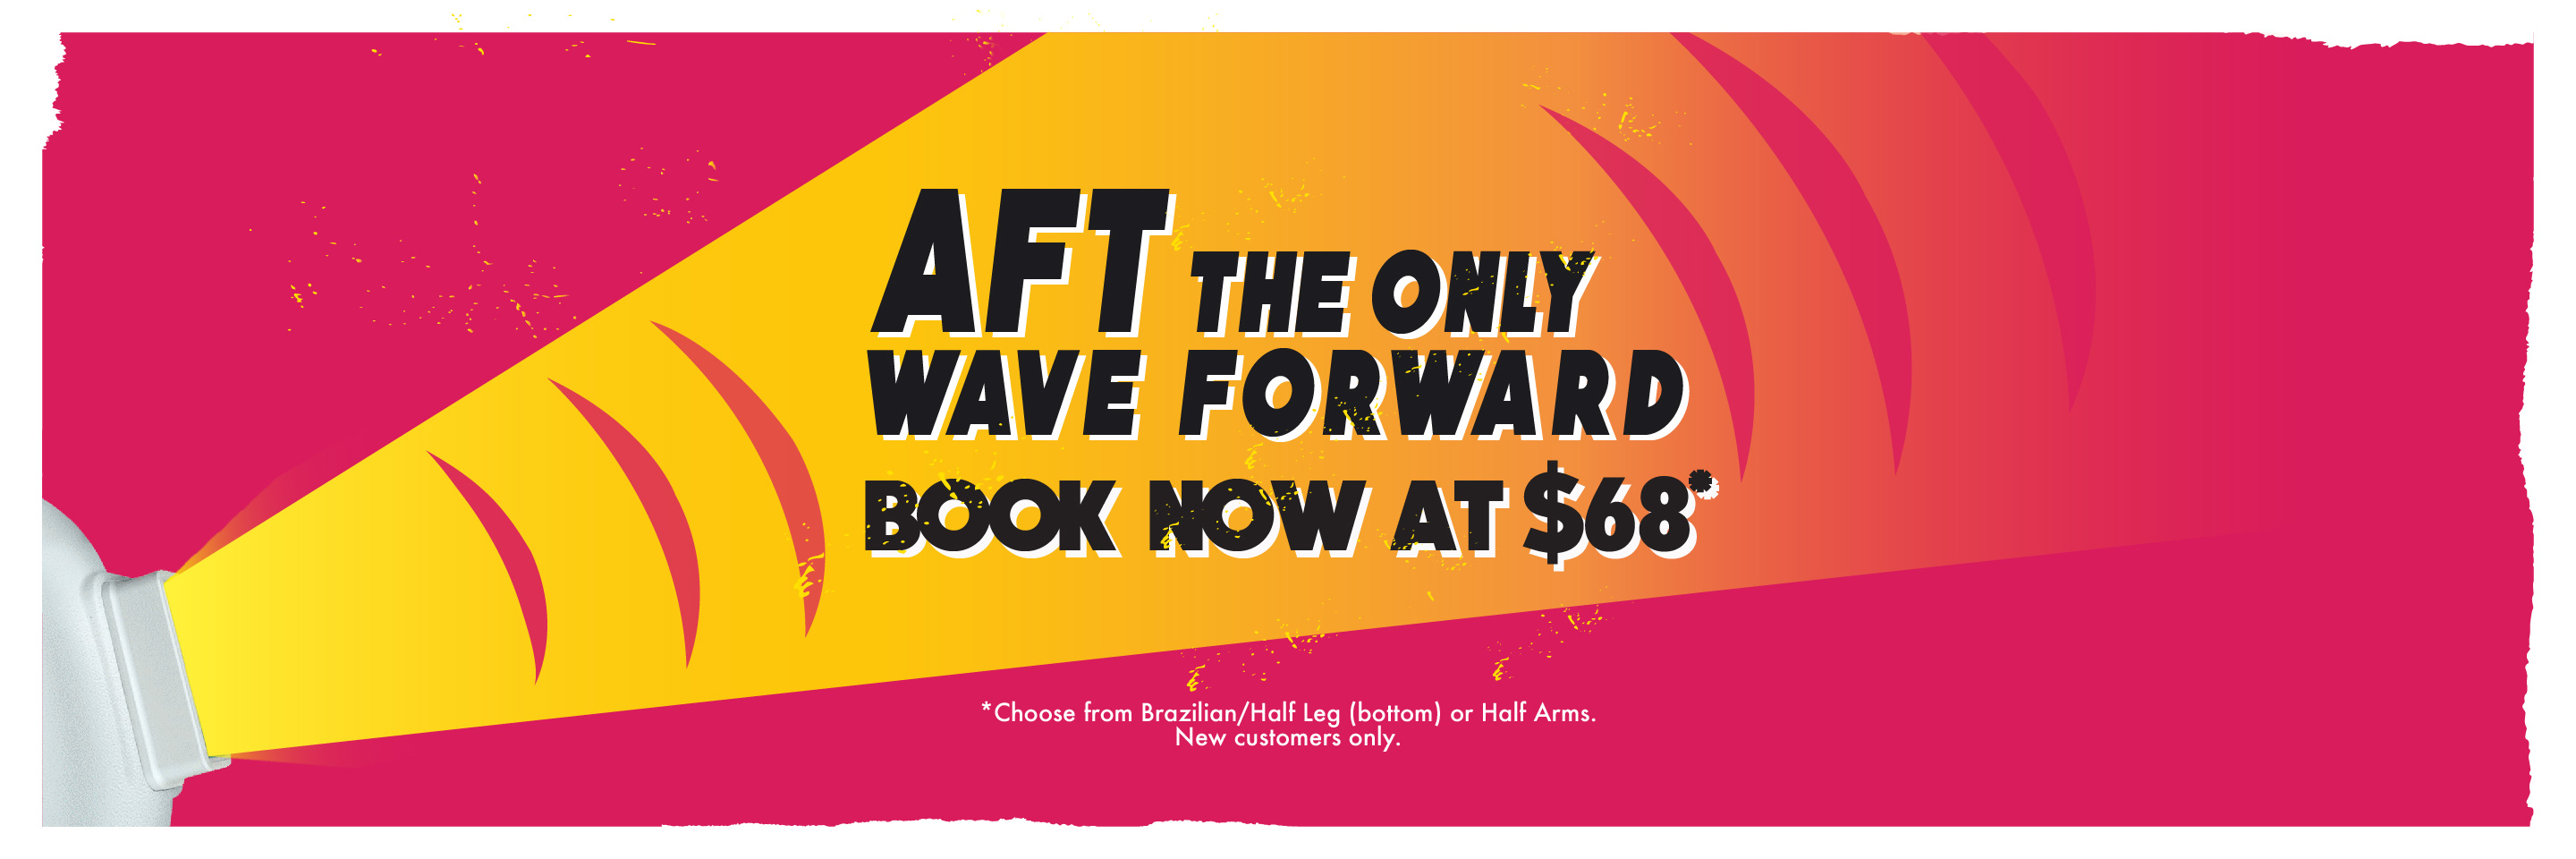 AFT The Only Wave Forward - Lead Gen June 2019